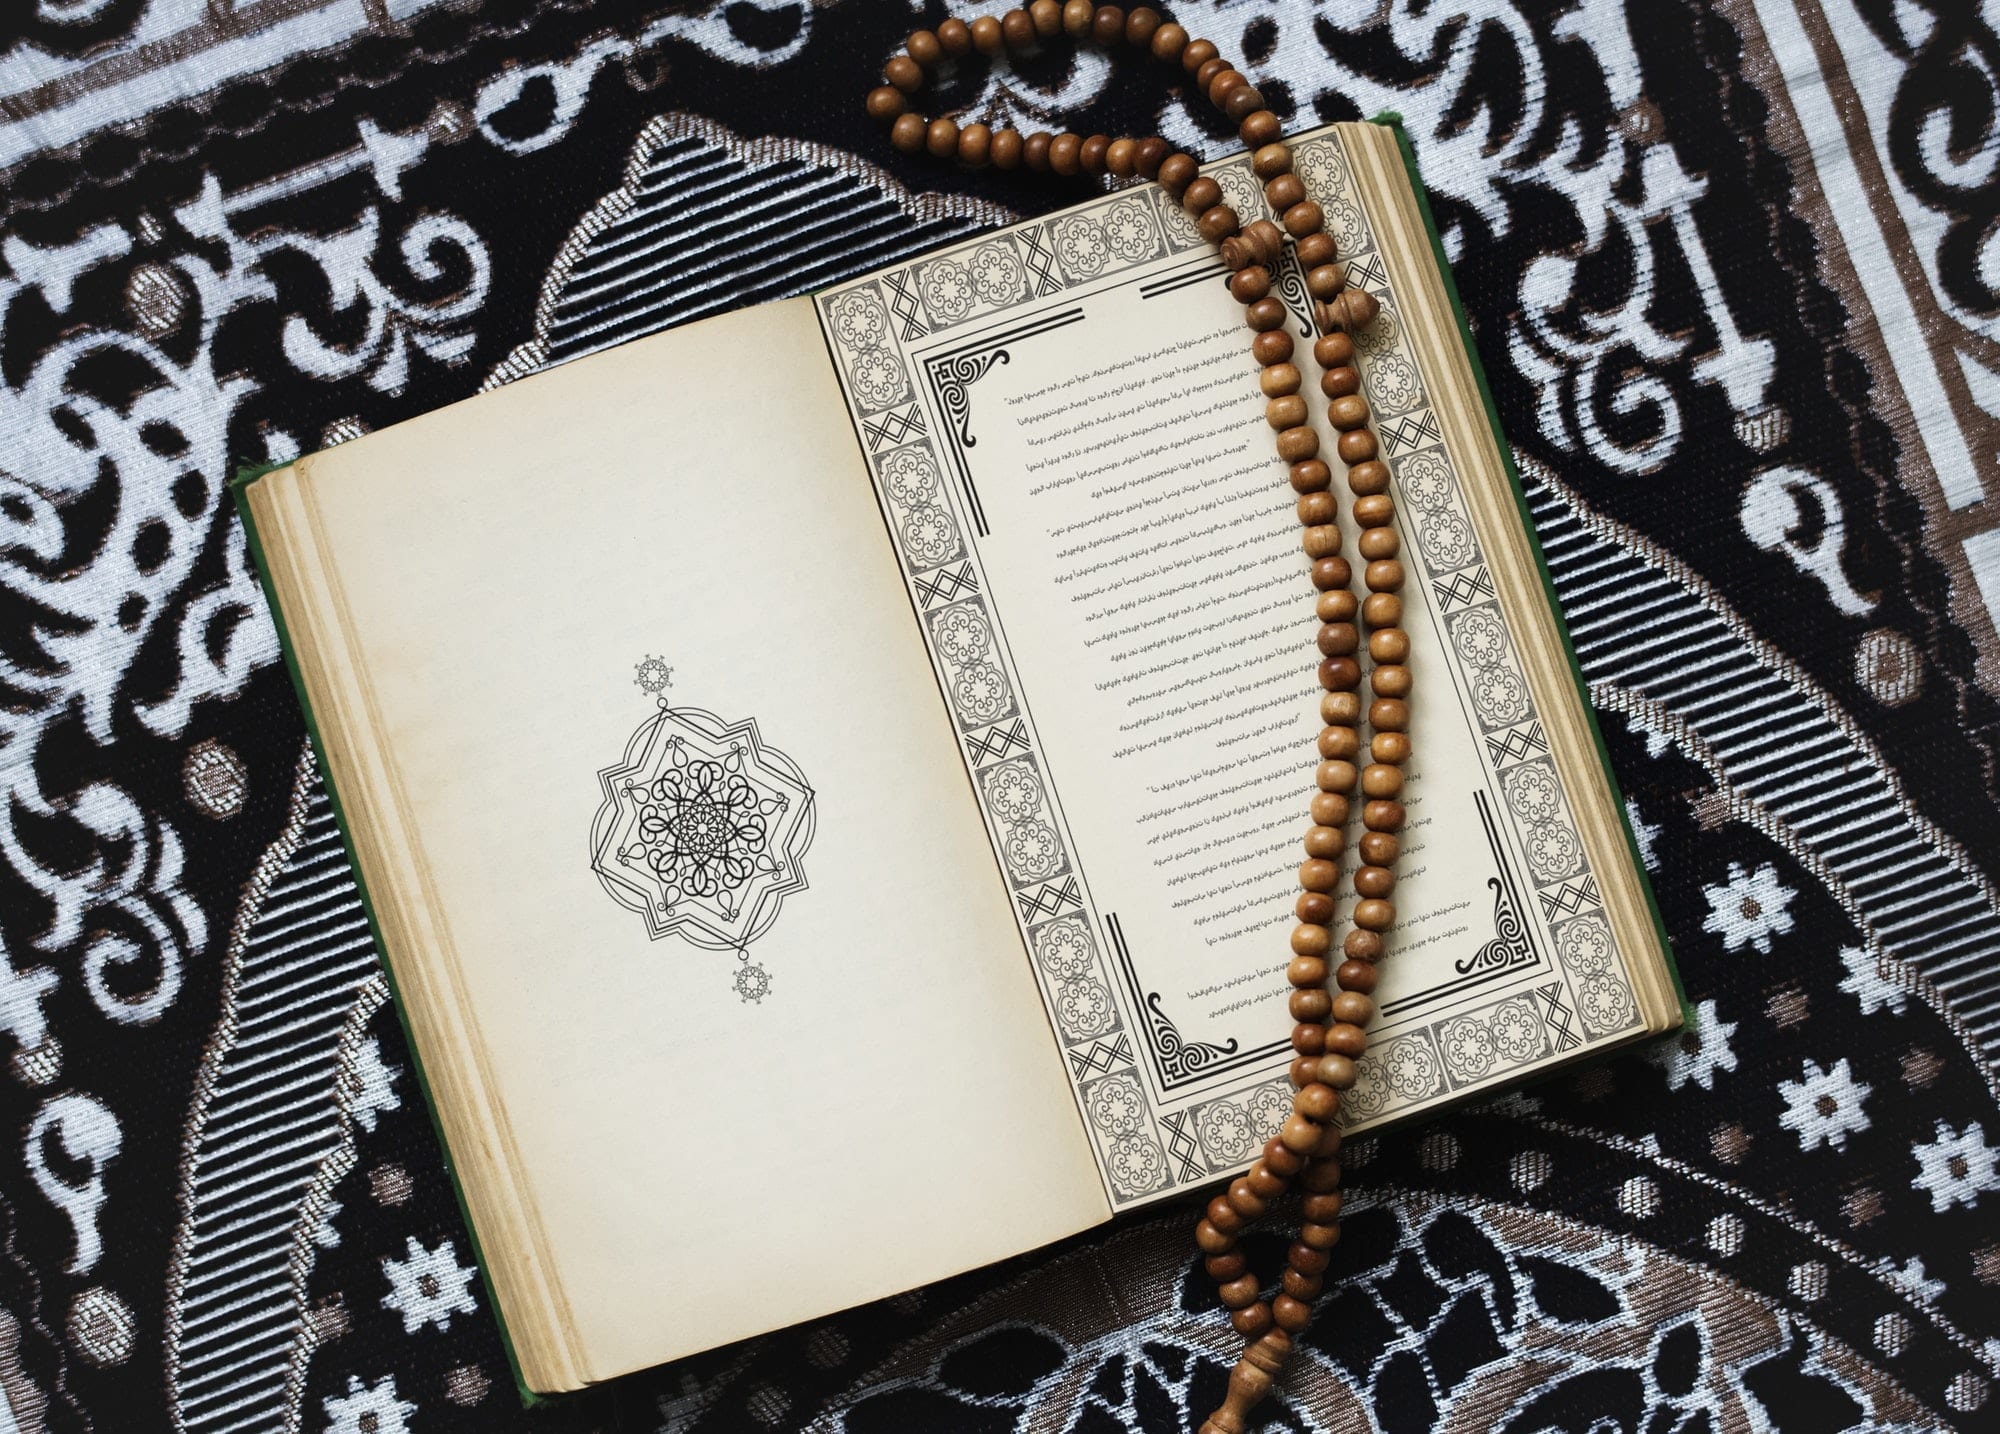 A traditional islamic holy book